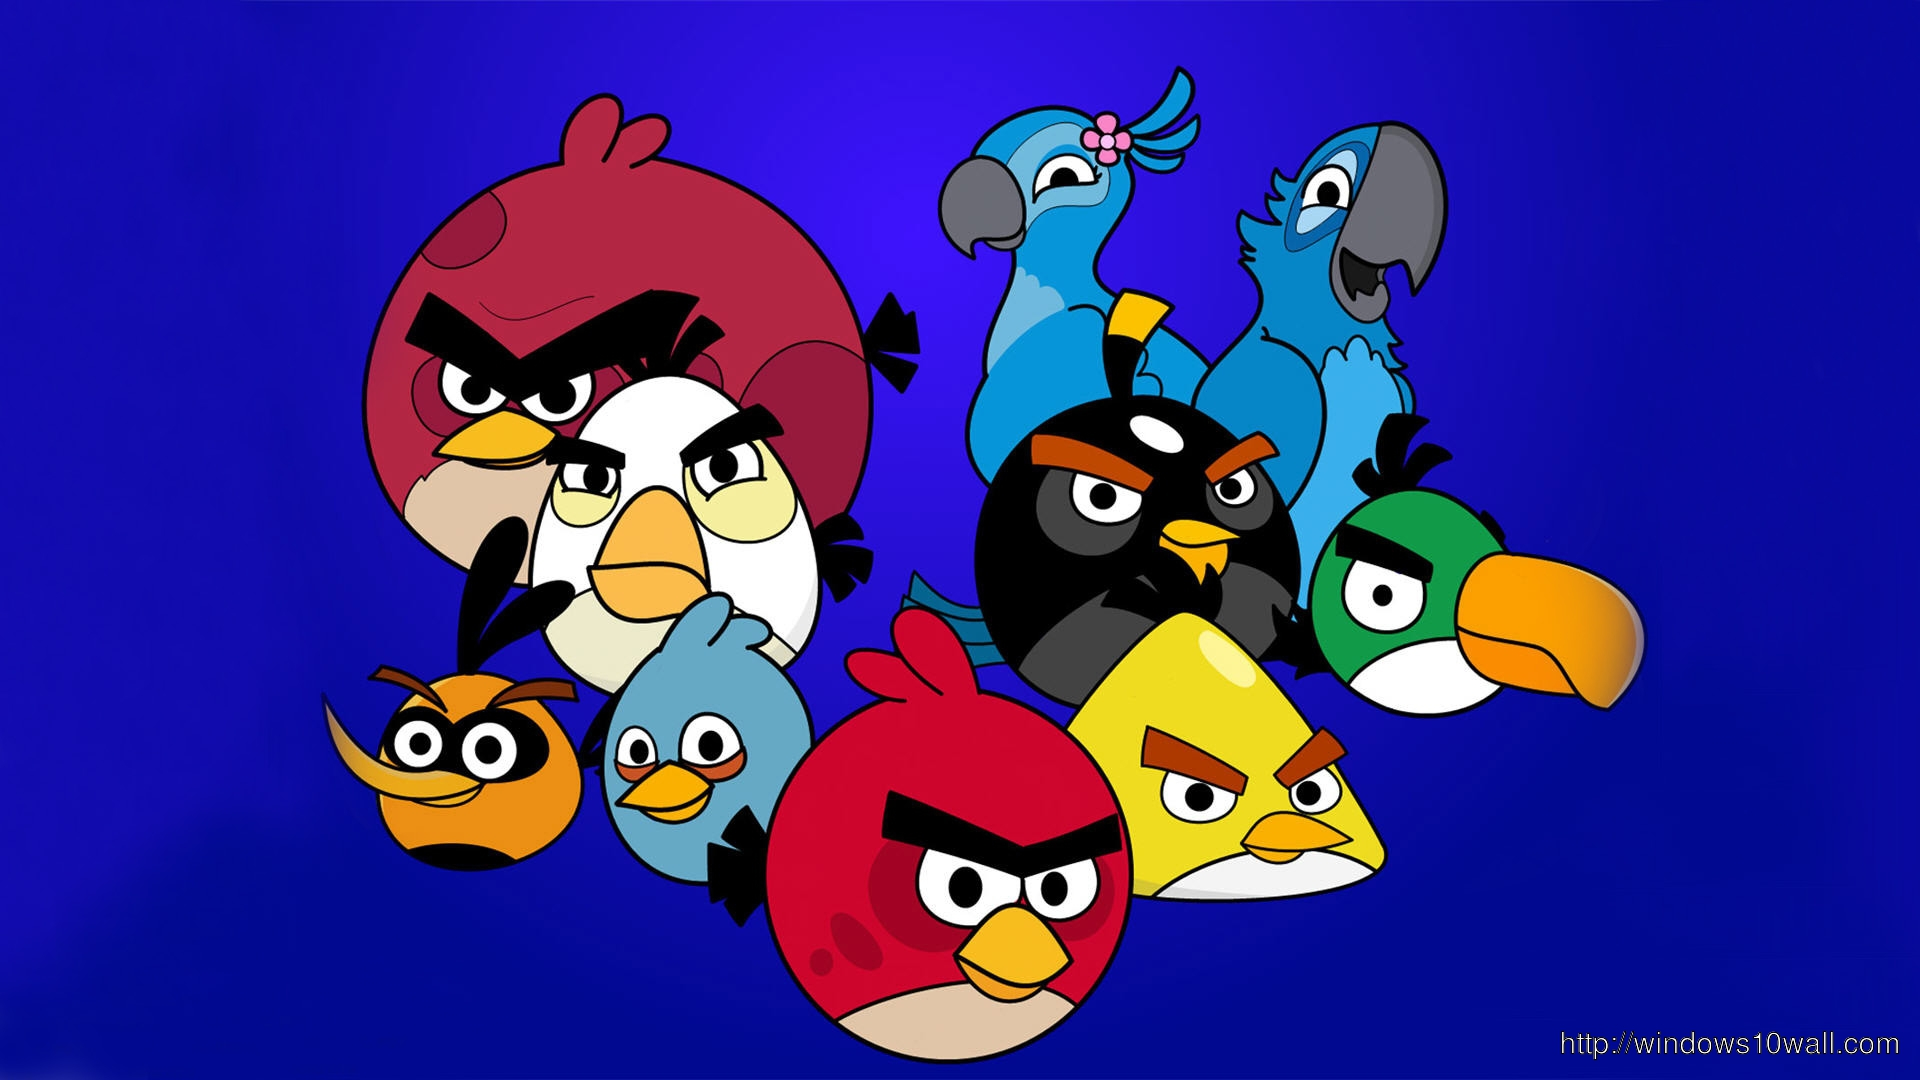 angry-birds-wallpaper-download-free